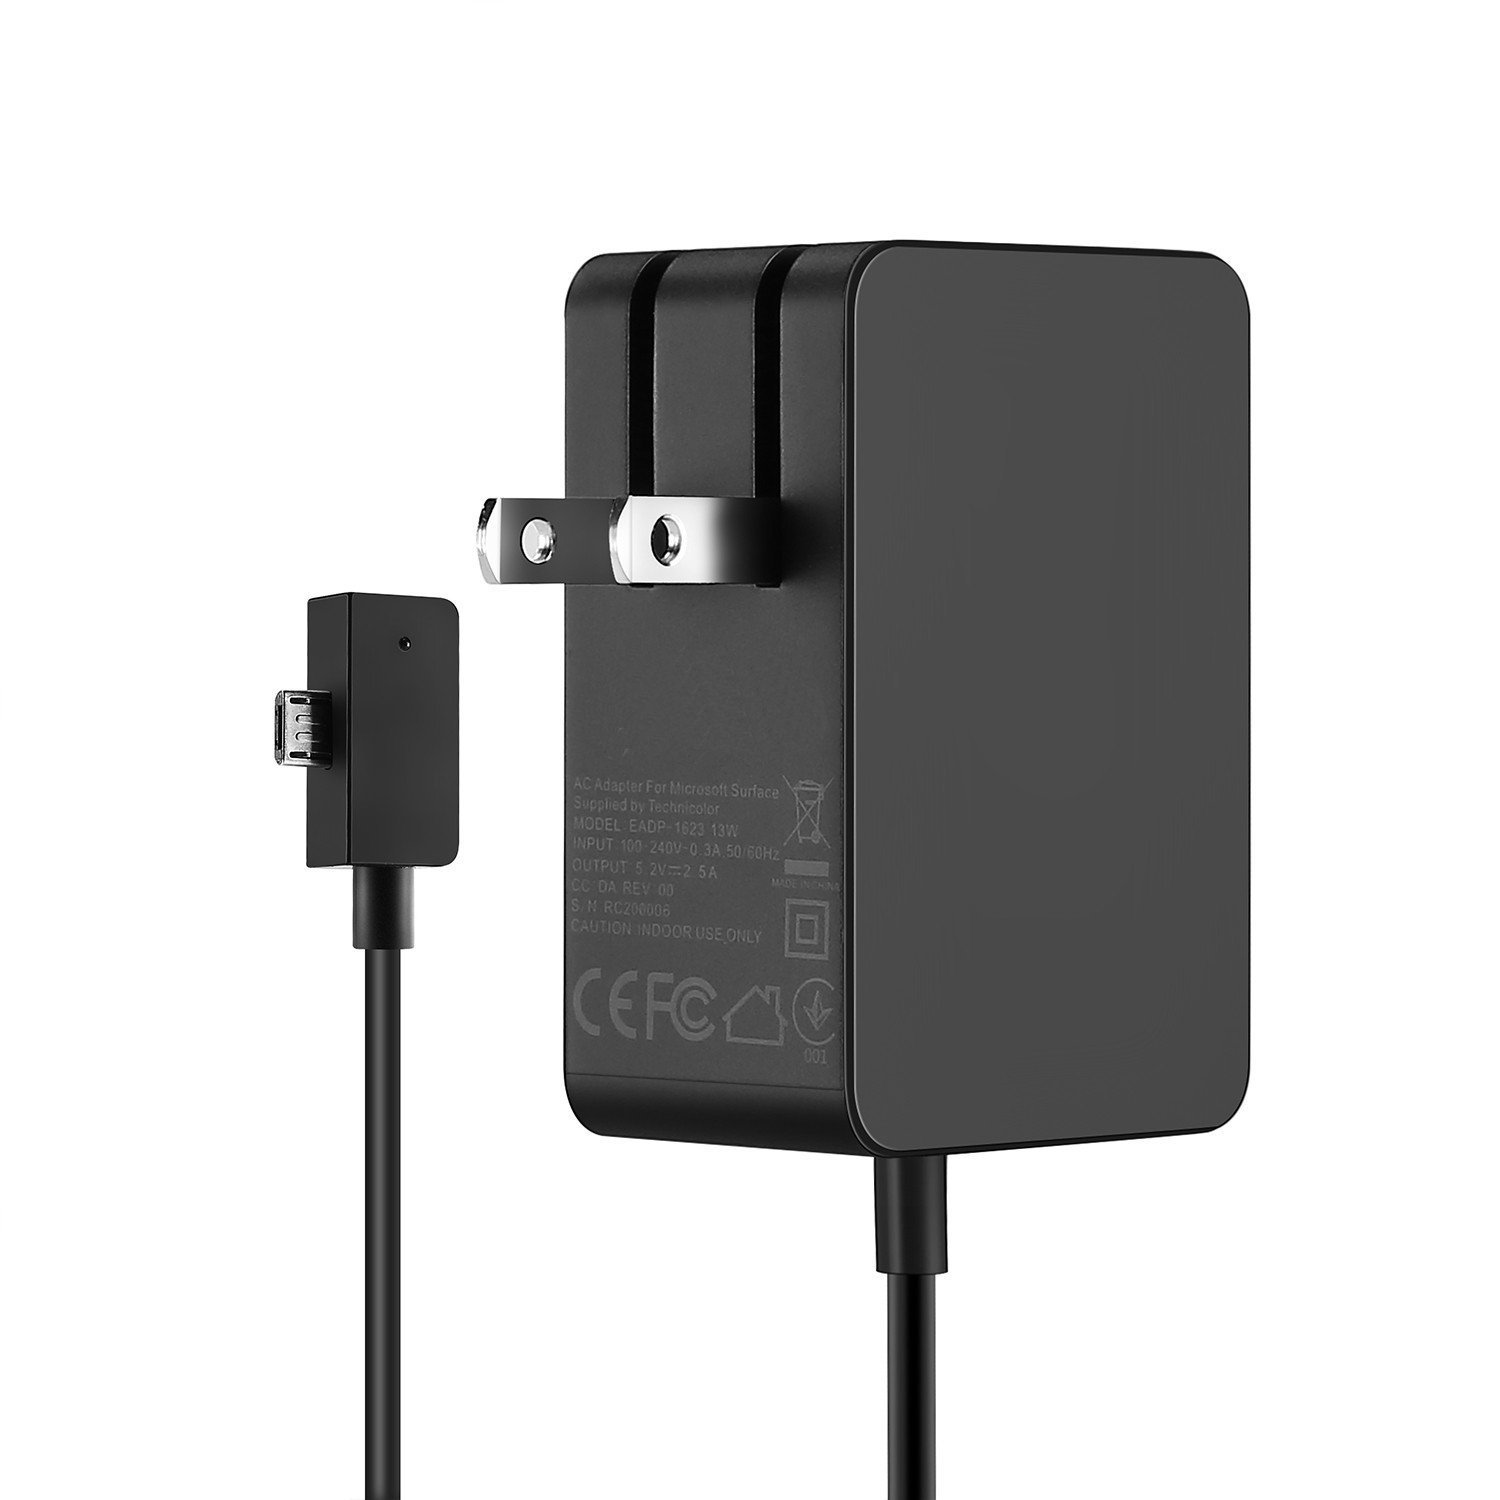 Surface 3 Charger 13W 5.2V 2.5A AC Power Adapter Charger Cord Microsoft Surface 3 Model 1623 1624 1645 Tablet USB Charging Port 4.9Ft Cable-1.5m TG-Tech